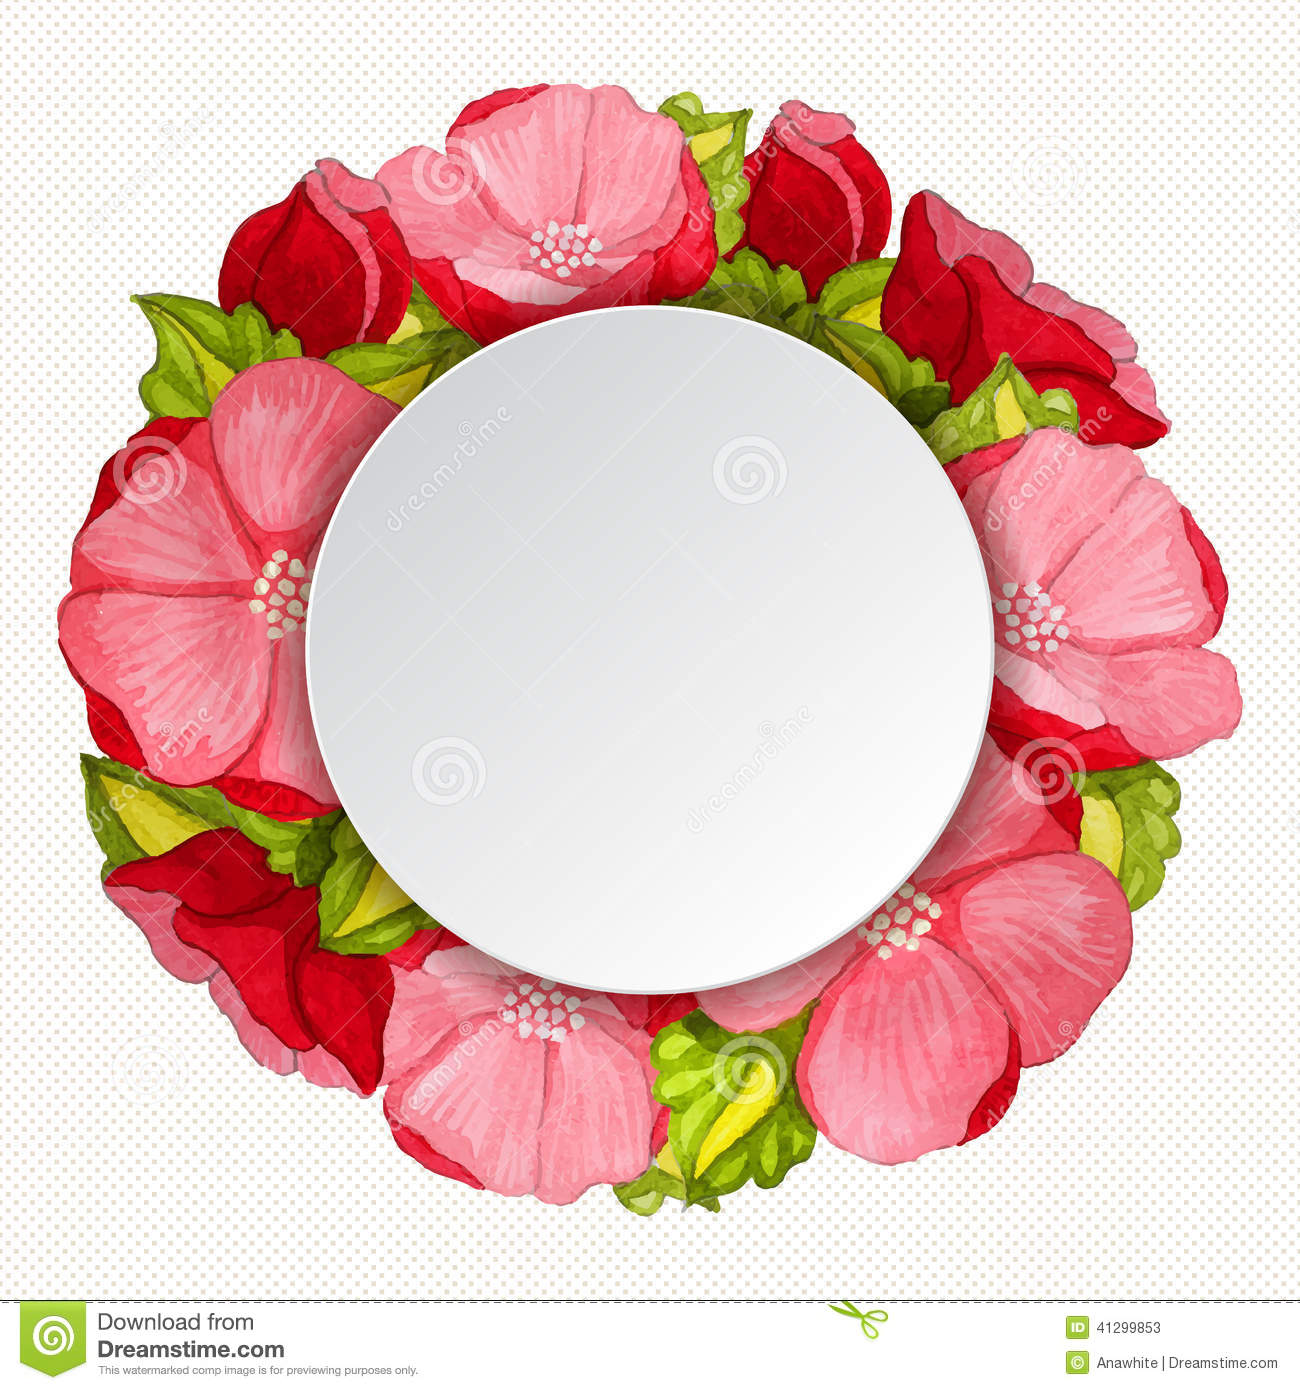 Vector round frame with pink flowers on white background in pastel - Frame Peony Pink Round